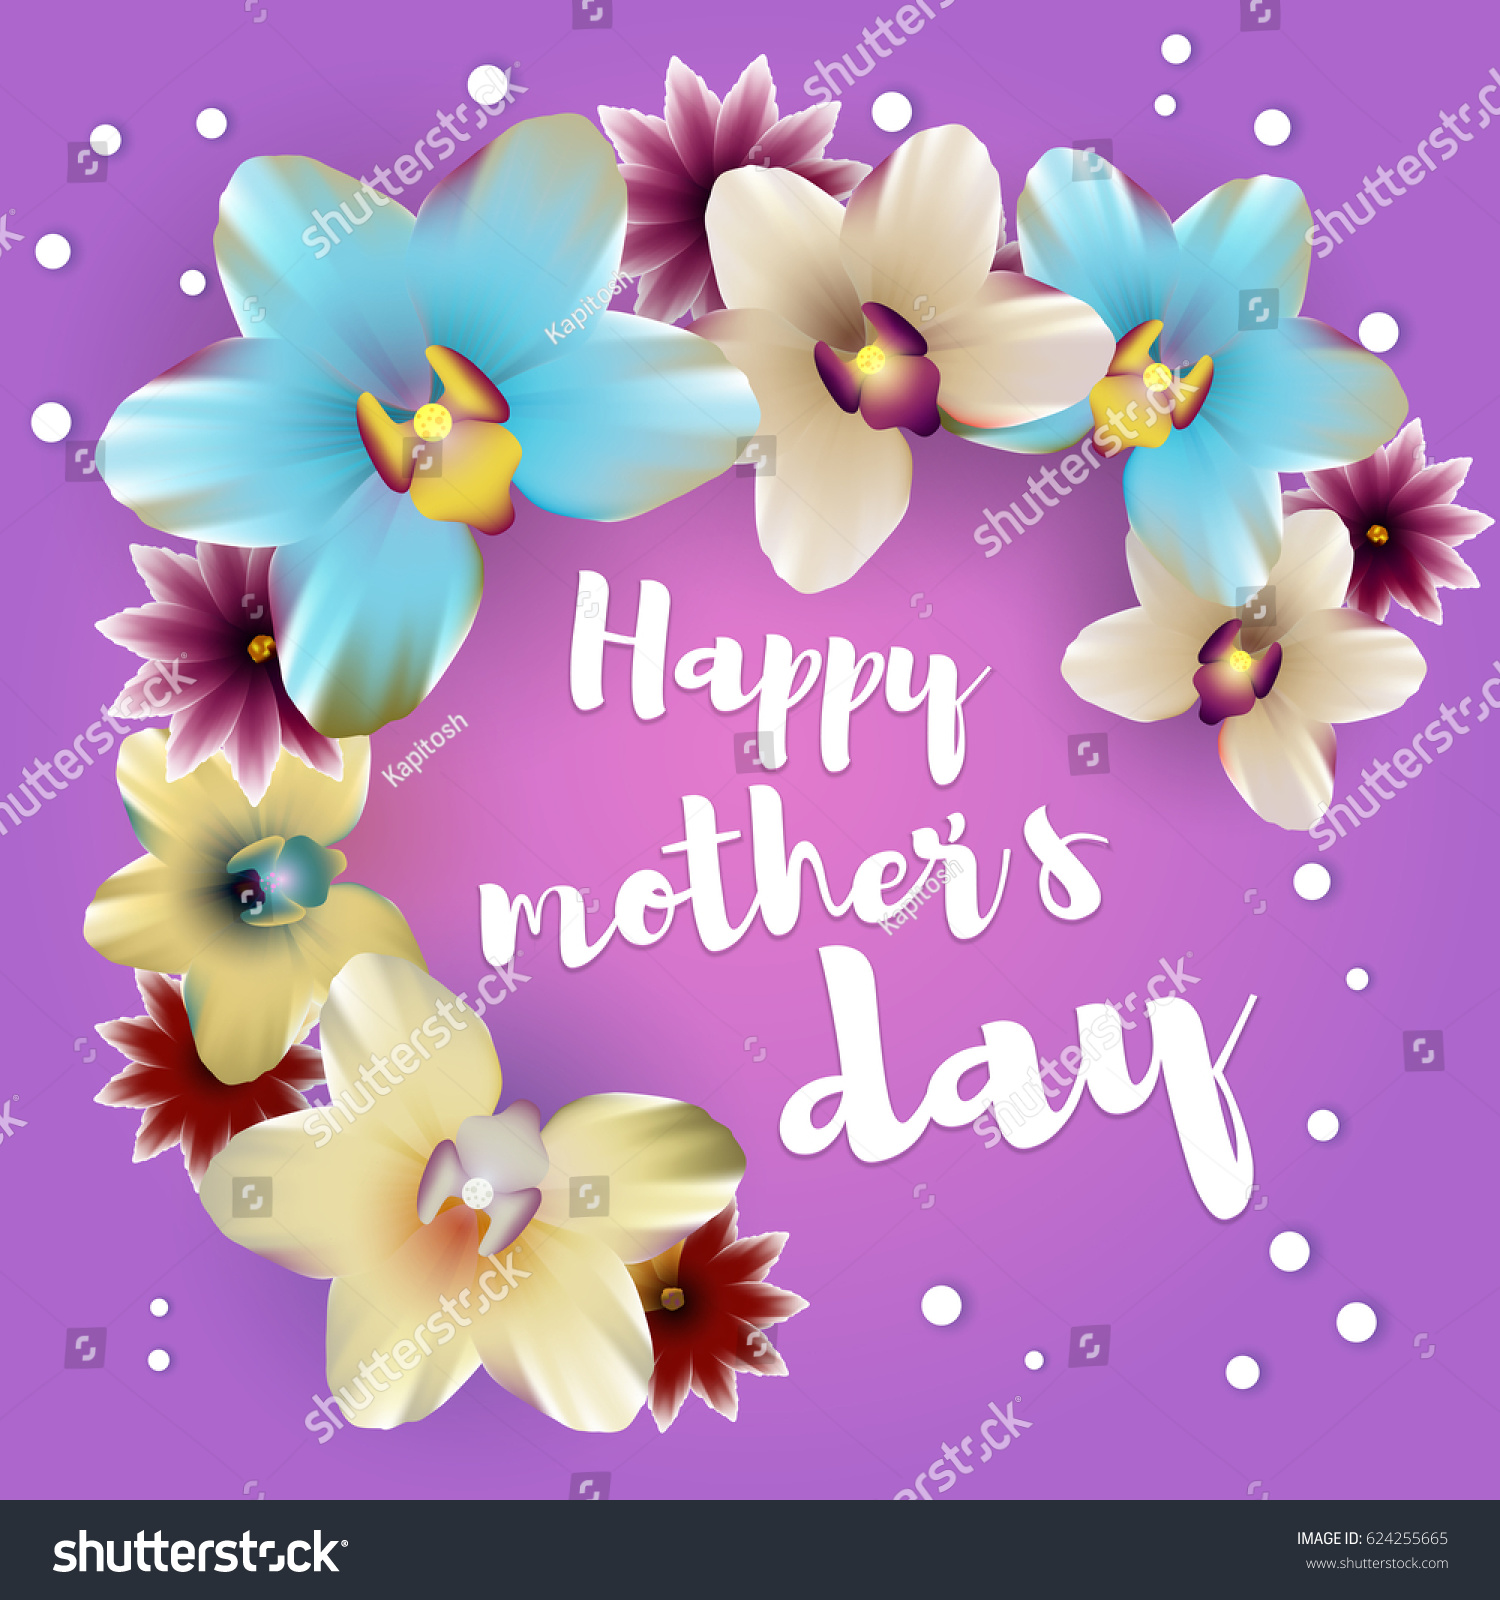 Greetings Happy Mothers Day Spring Banner Stock Vector Royalty Free